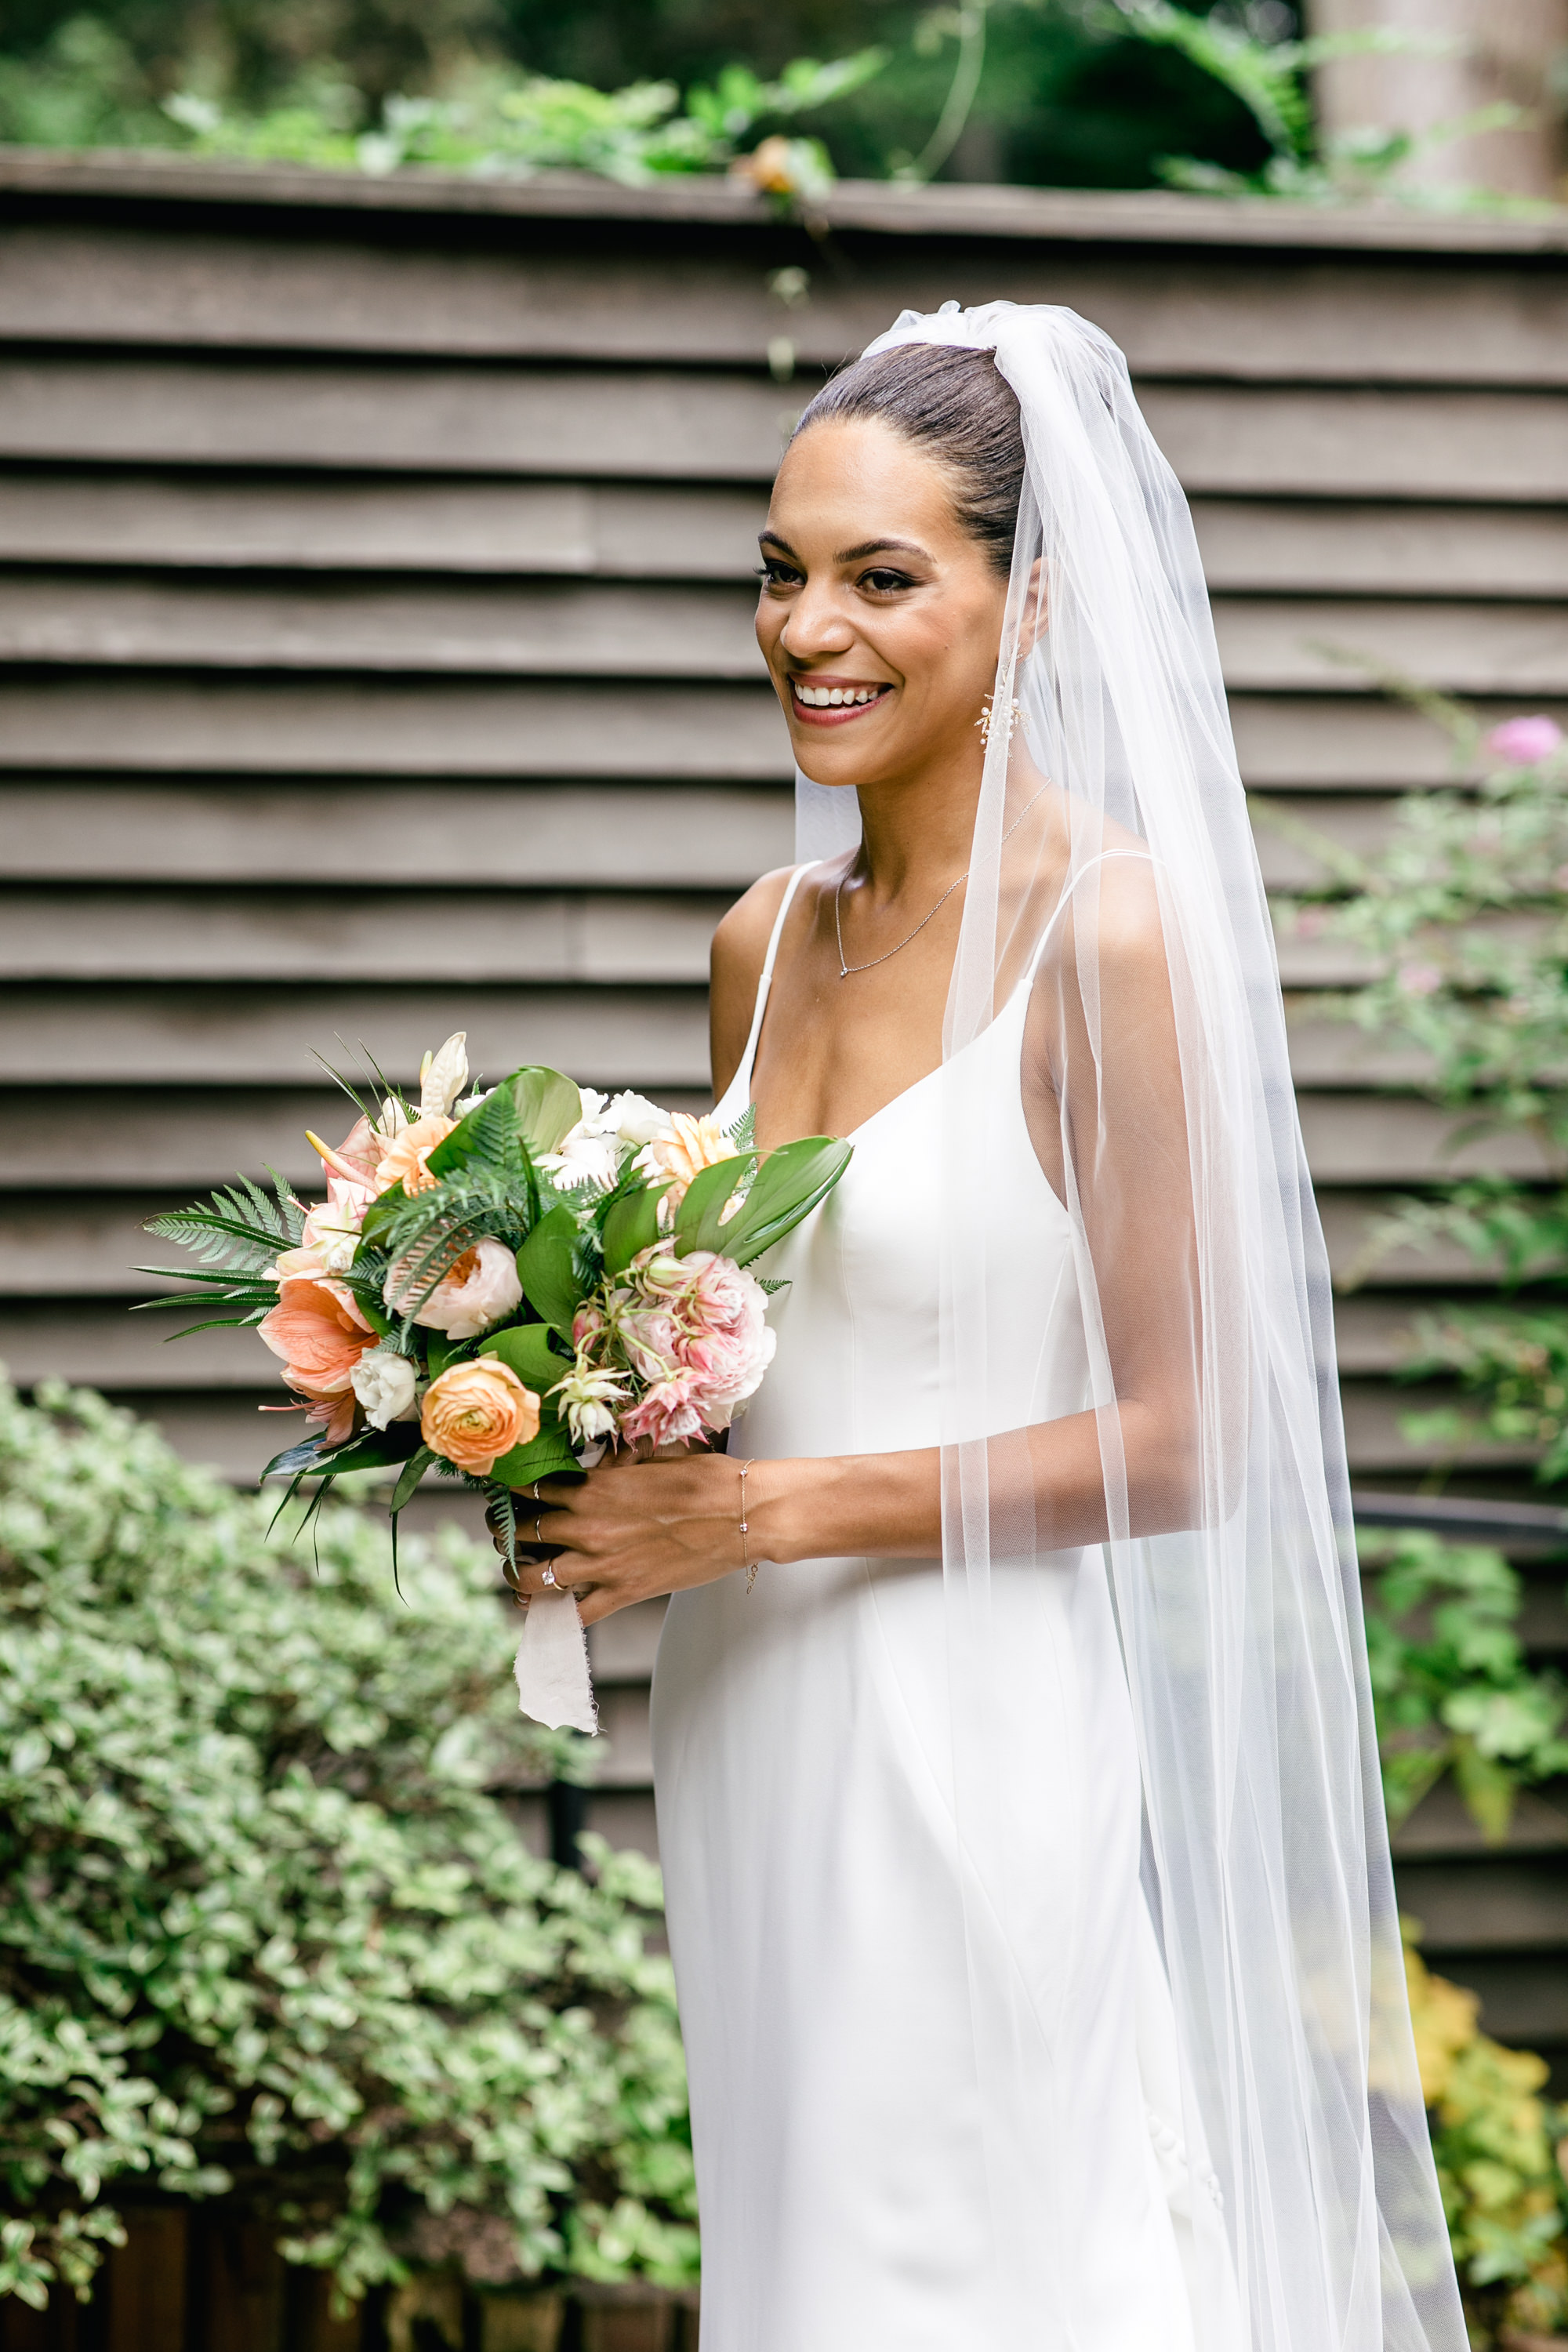 photography-wedding-weddings-natural-candid-dock 5 dc-washington dc-philadelphia-mixed race-editorial-modern-fine-art-013.JPG